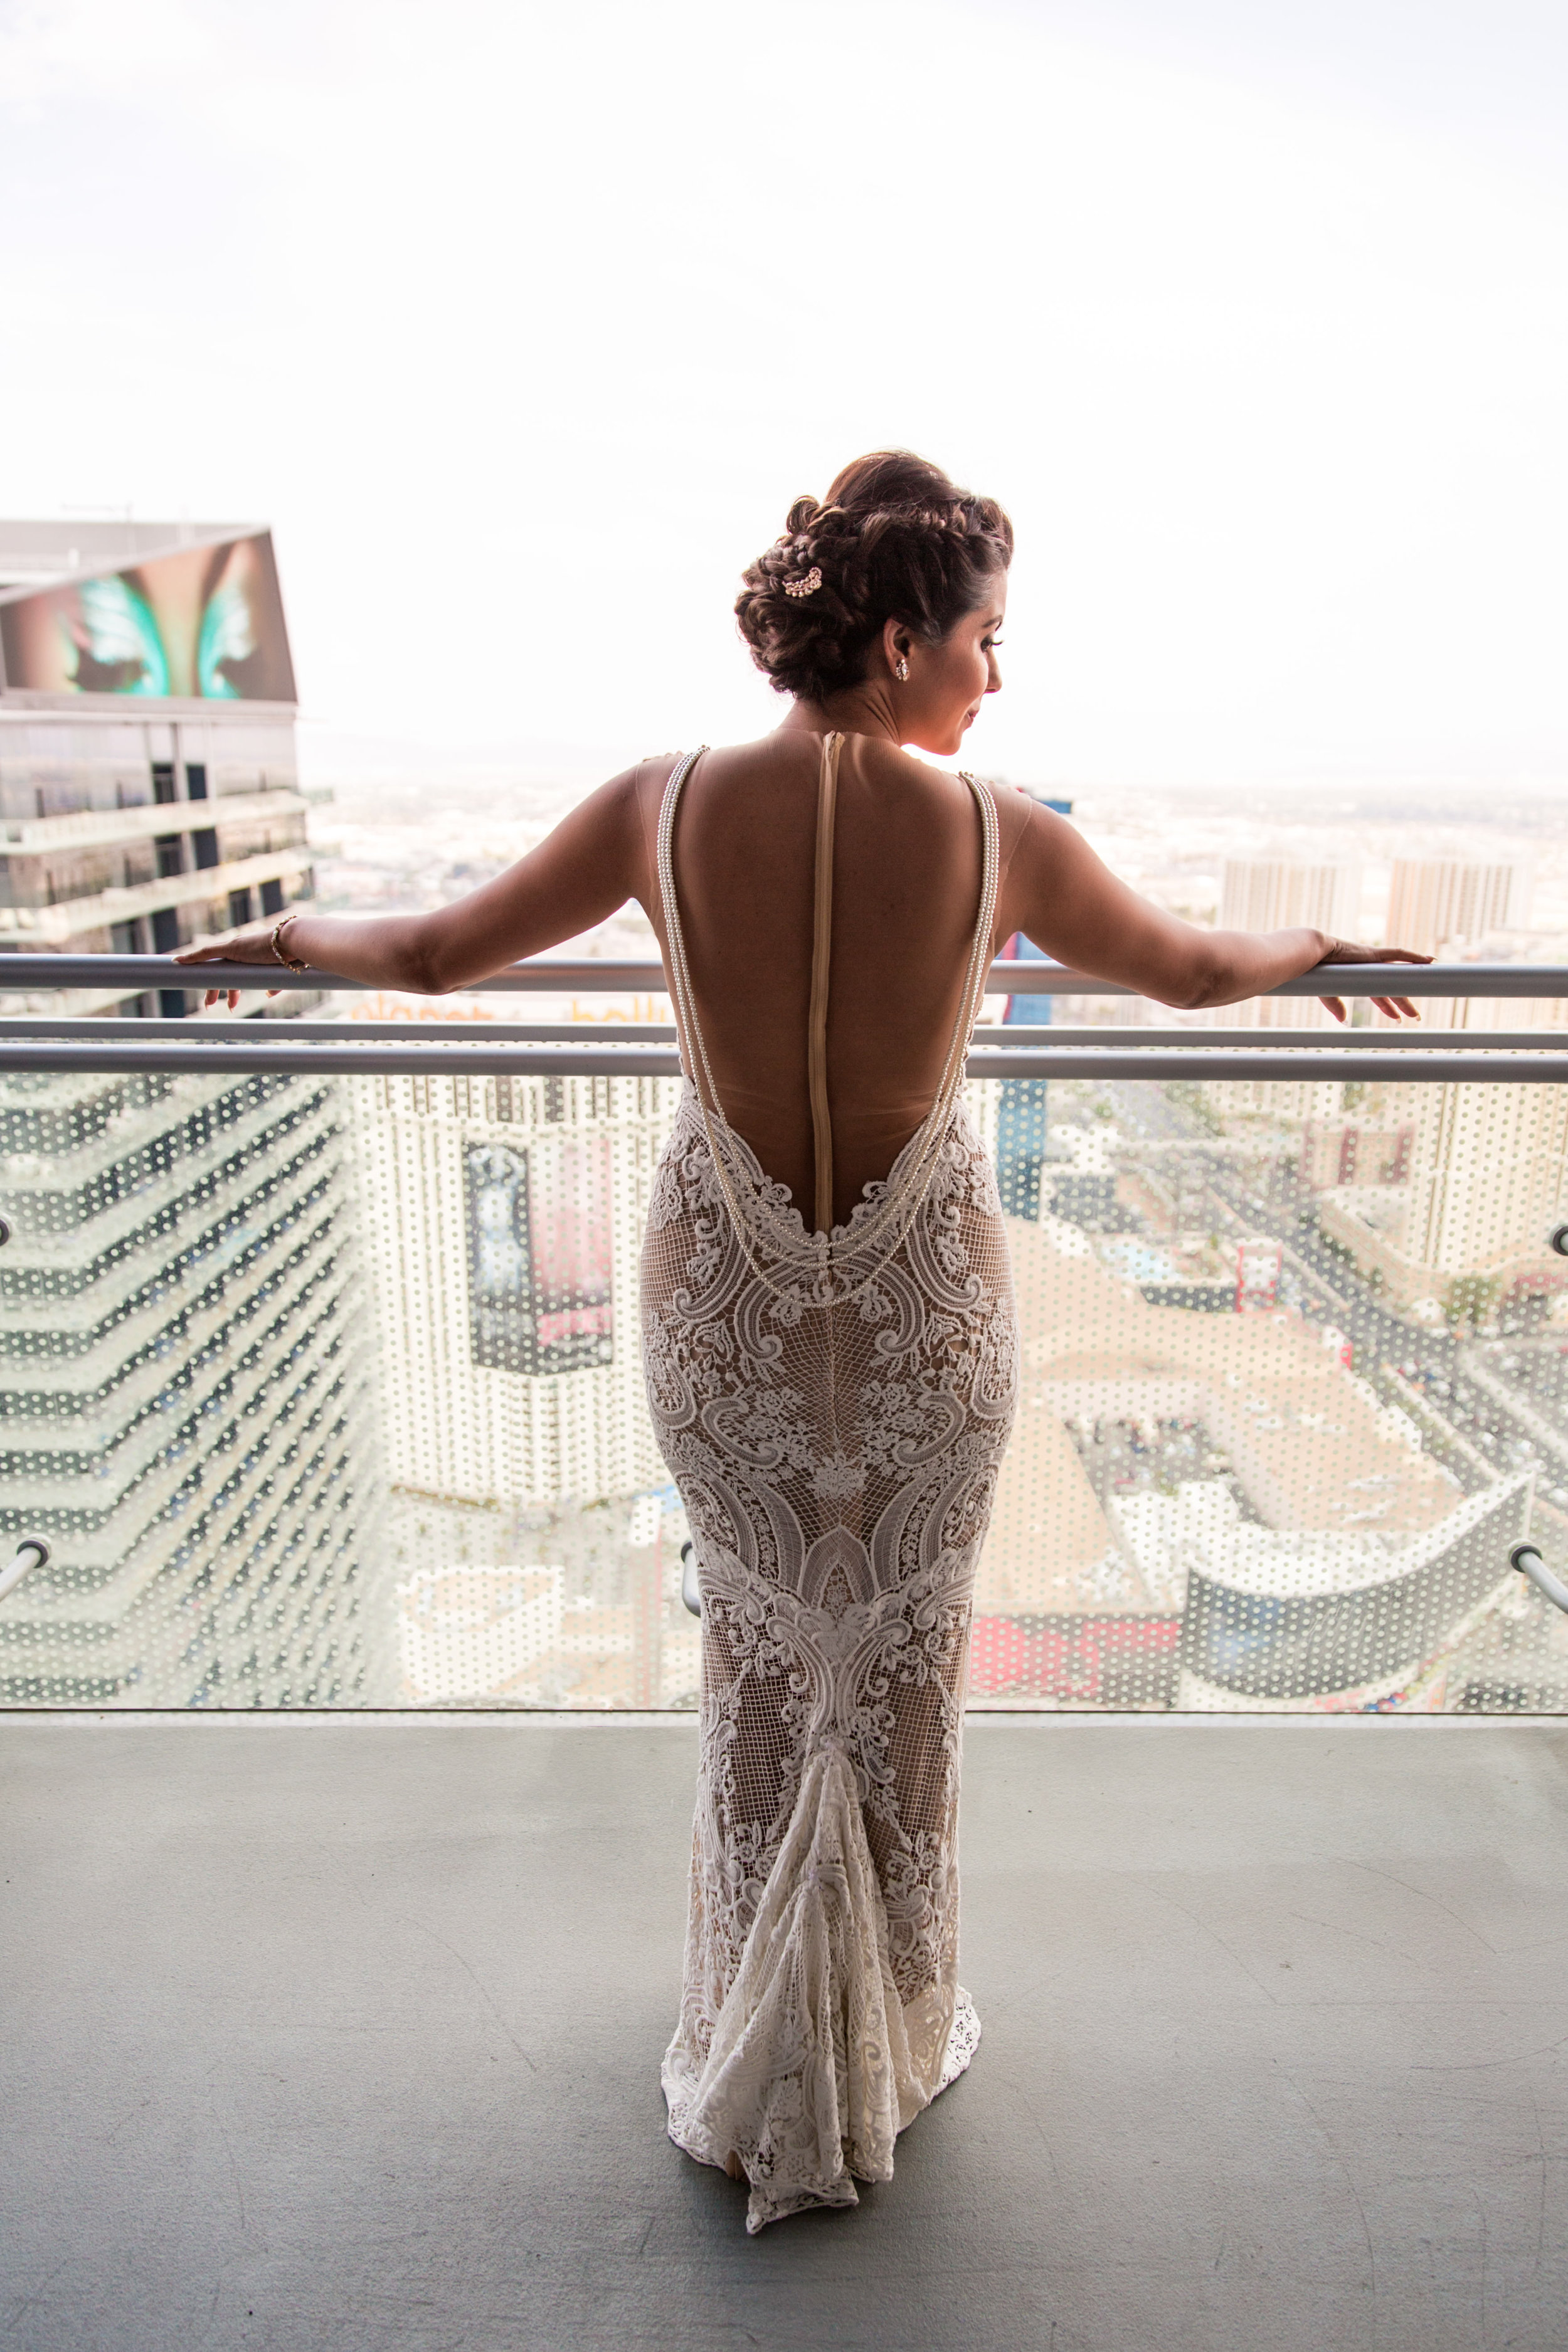 Bride on balcony, waiting.Wedding Planning by  Andrea Eppolito Events  · Photography by  Shandro Photo   · Wedding Venue  Four Seasons Las Vegas  · Floral and Decor by  Destination by Design  · Chandeliers and Lighting by  LED Unplugged